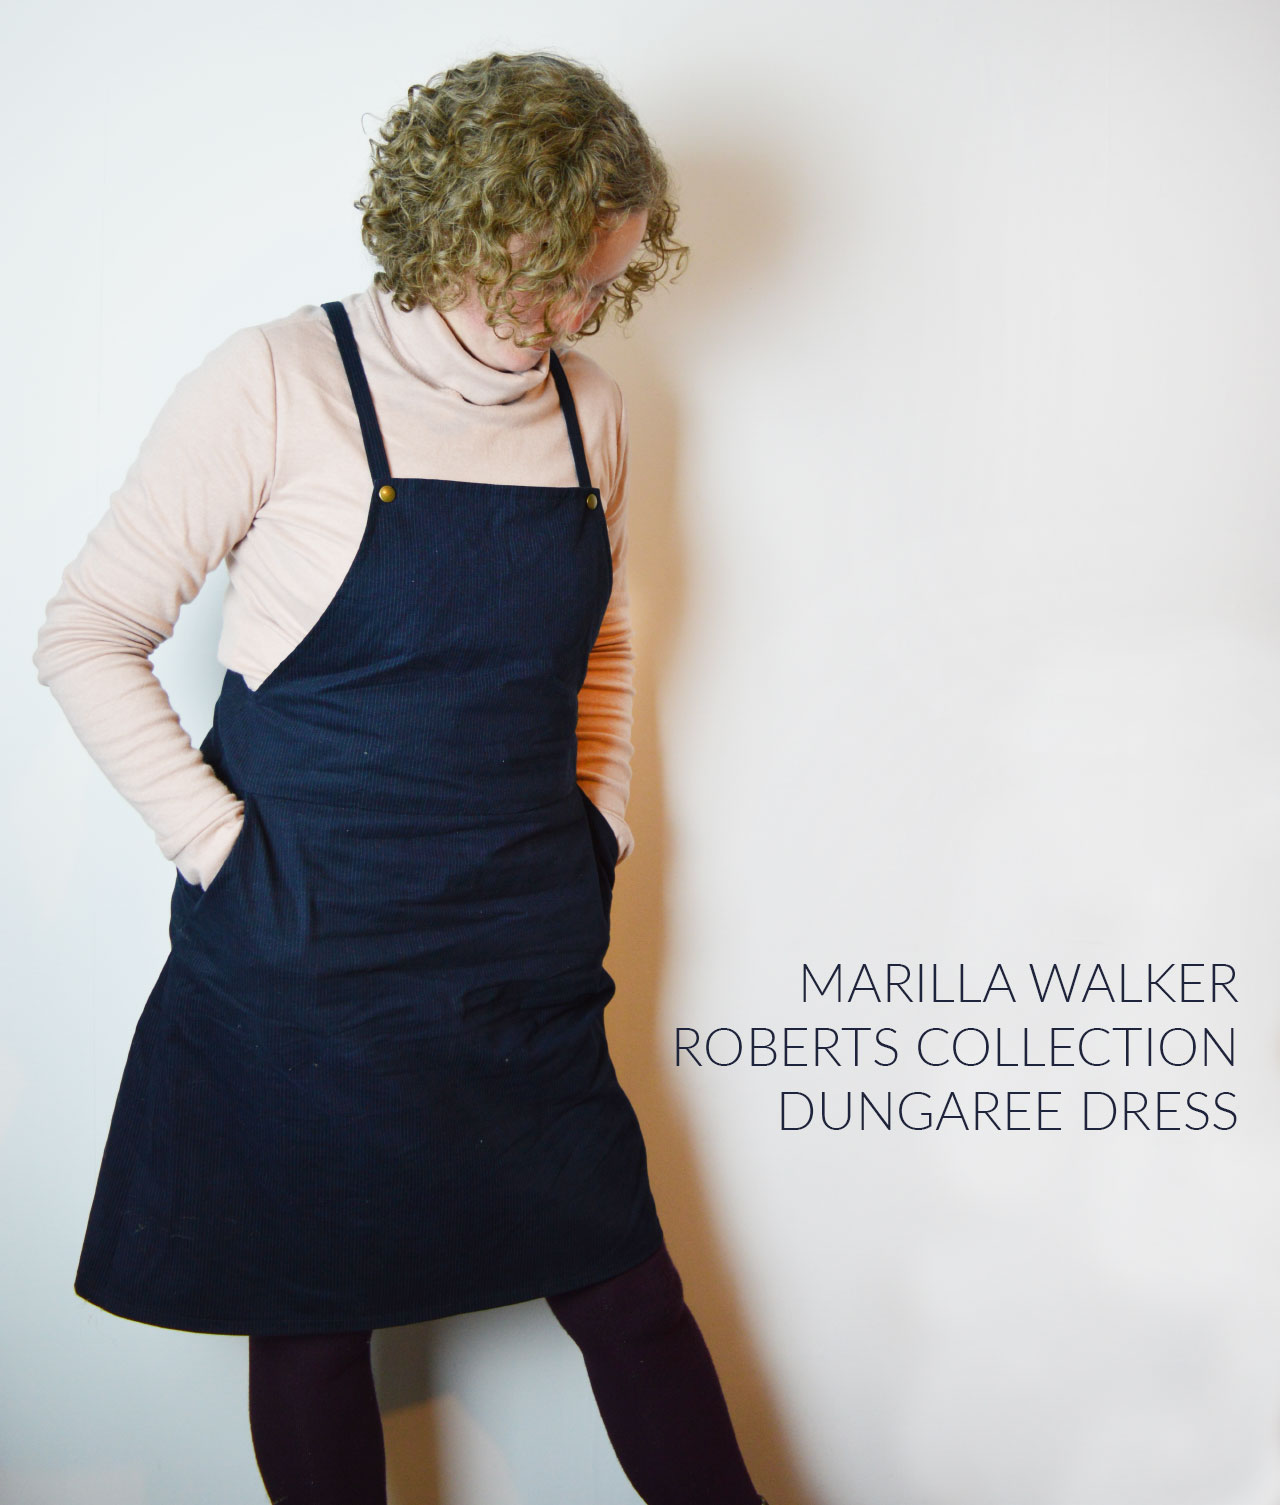 Holm Sown Online Fabric Shop - Marilla Walker Roberts Collection Dungaree Dress Pattern Review